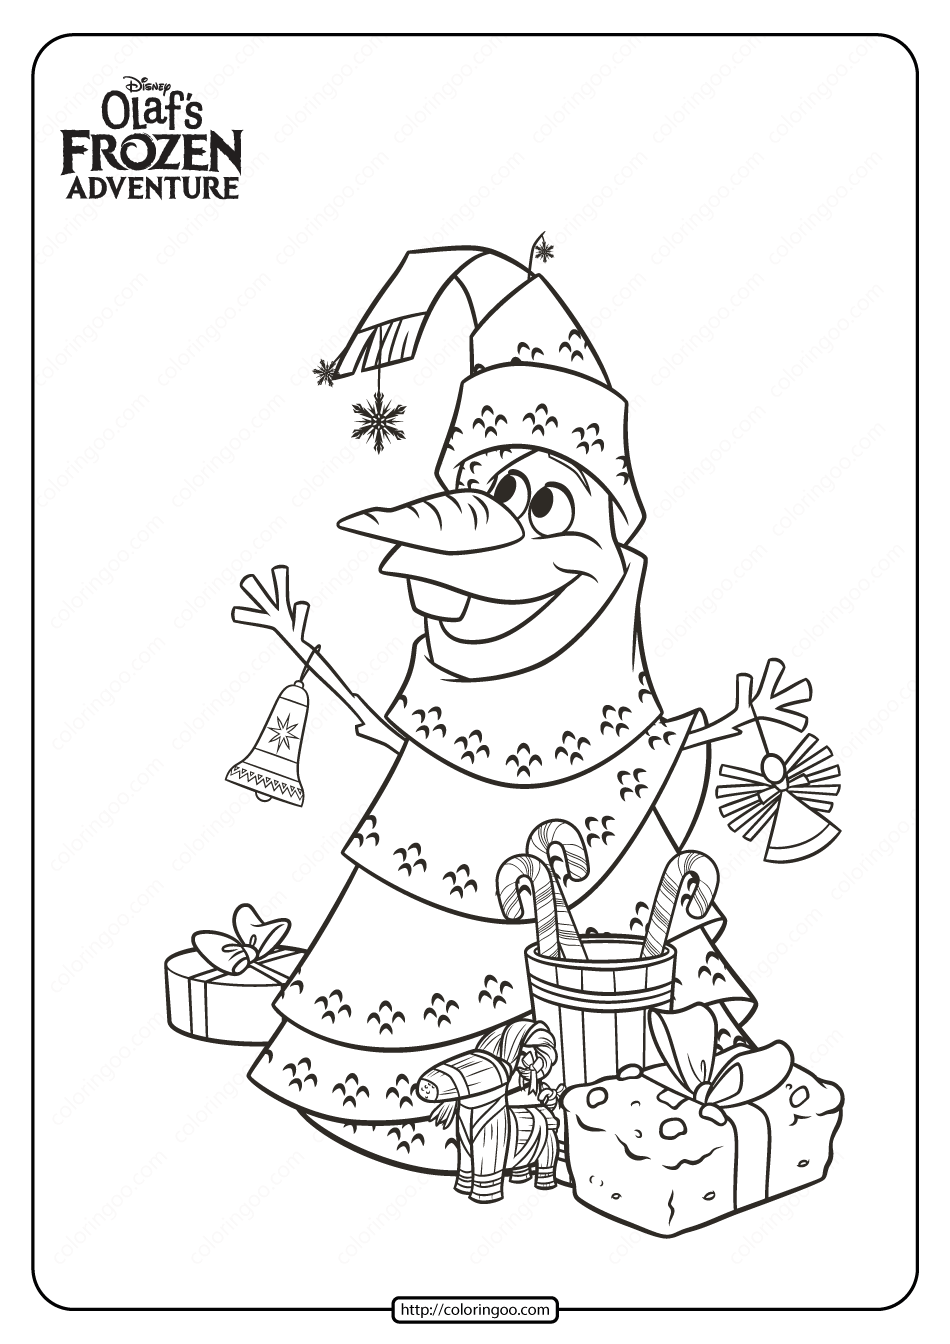 - Disney Olaf's Frozen Adventure Coloring Pages 01